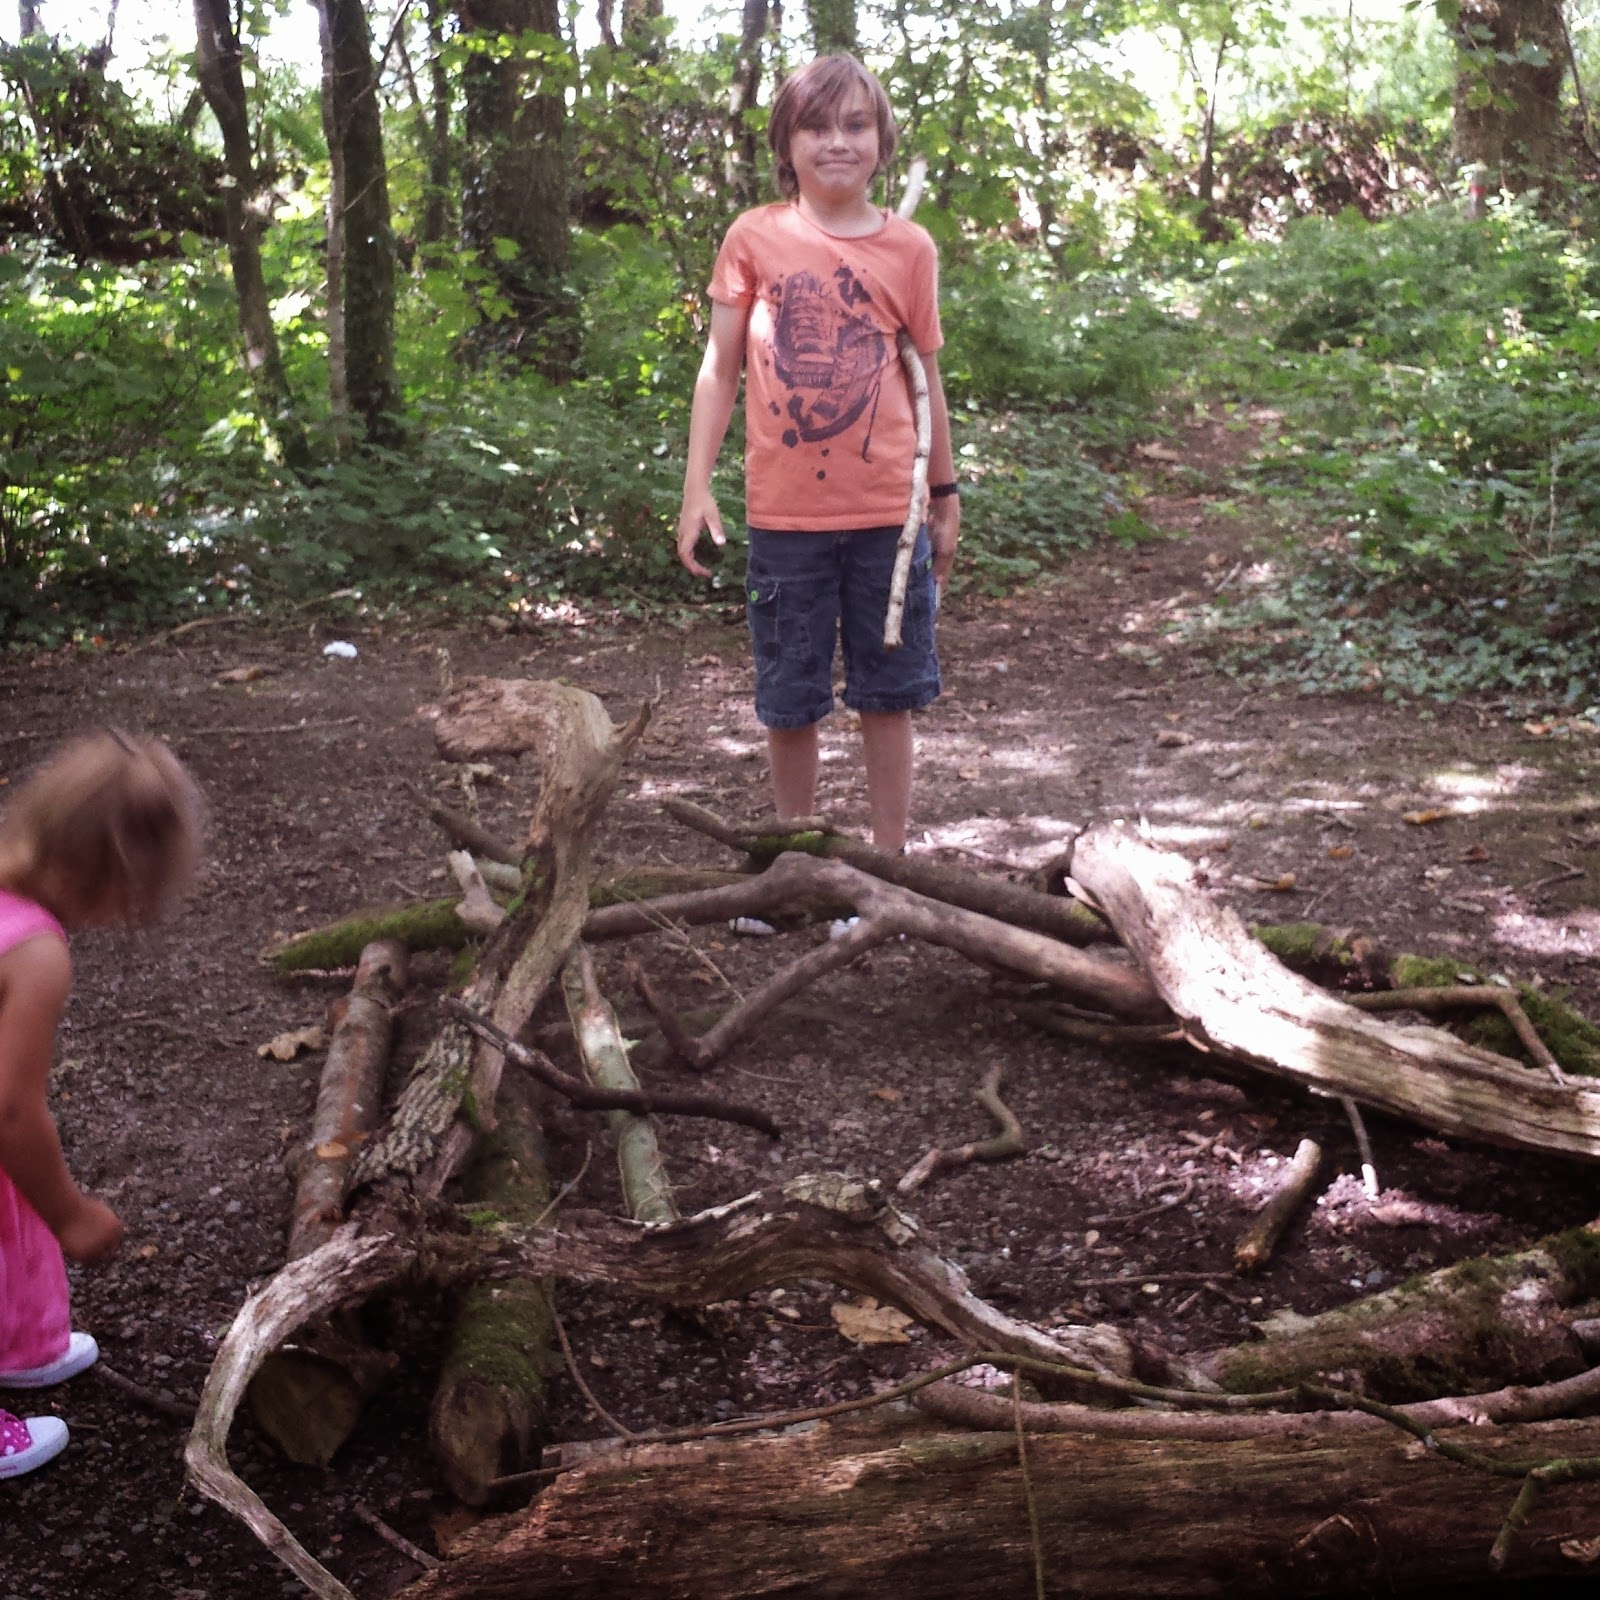 Scolton Manor Family Fun Country Kids pembrokeshire Wales Day Out Trip den